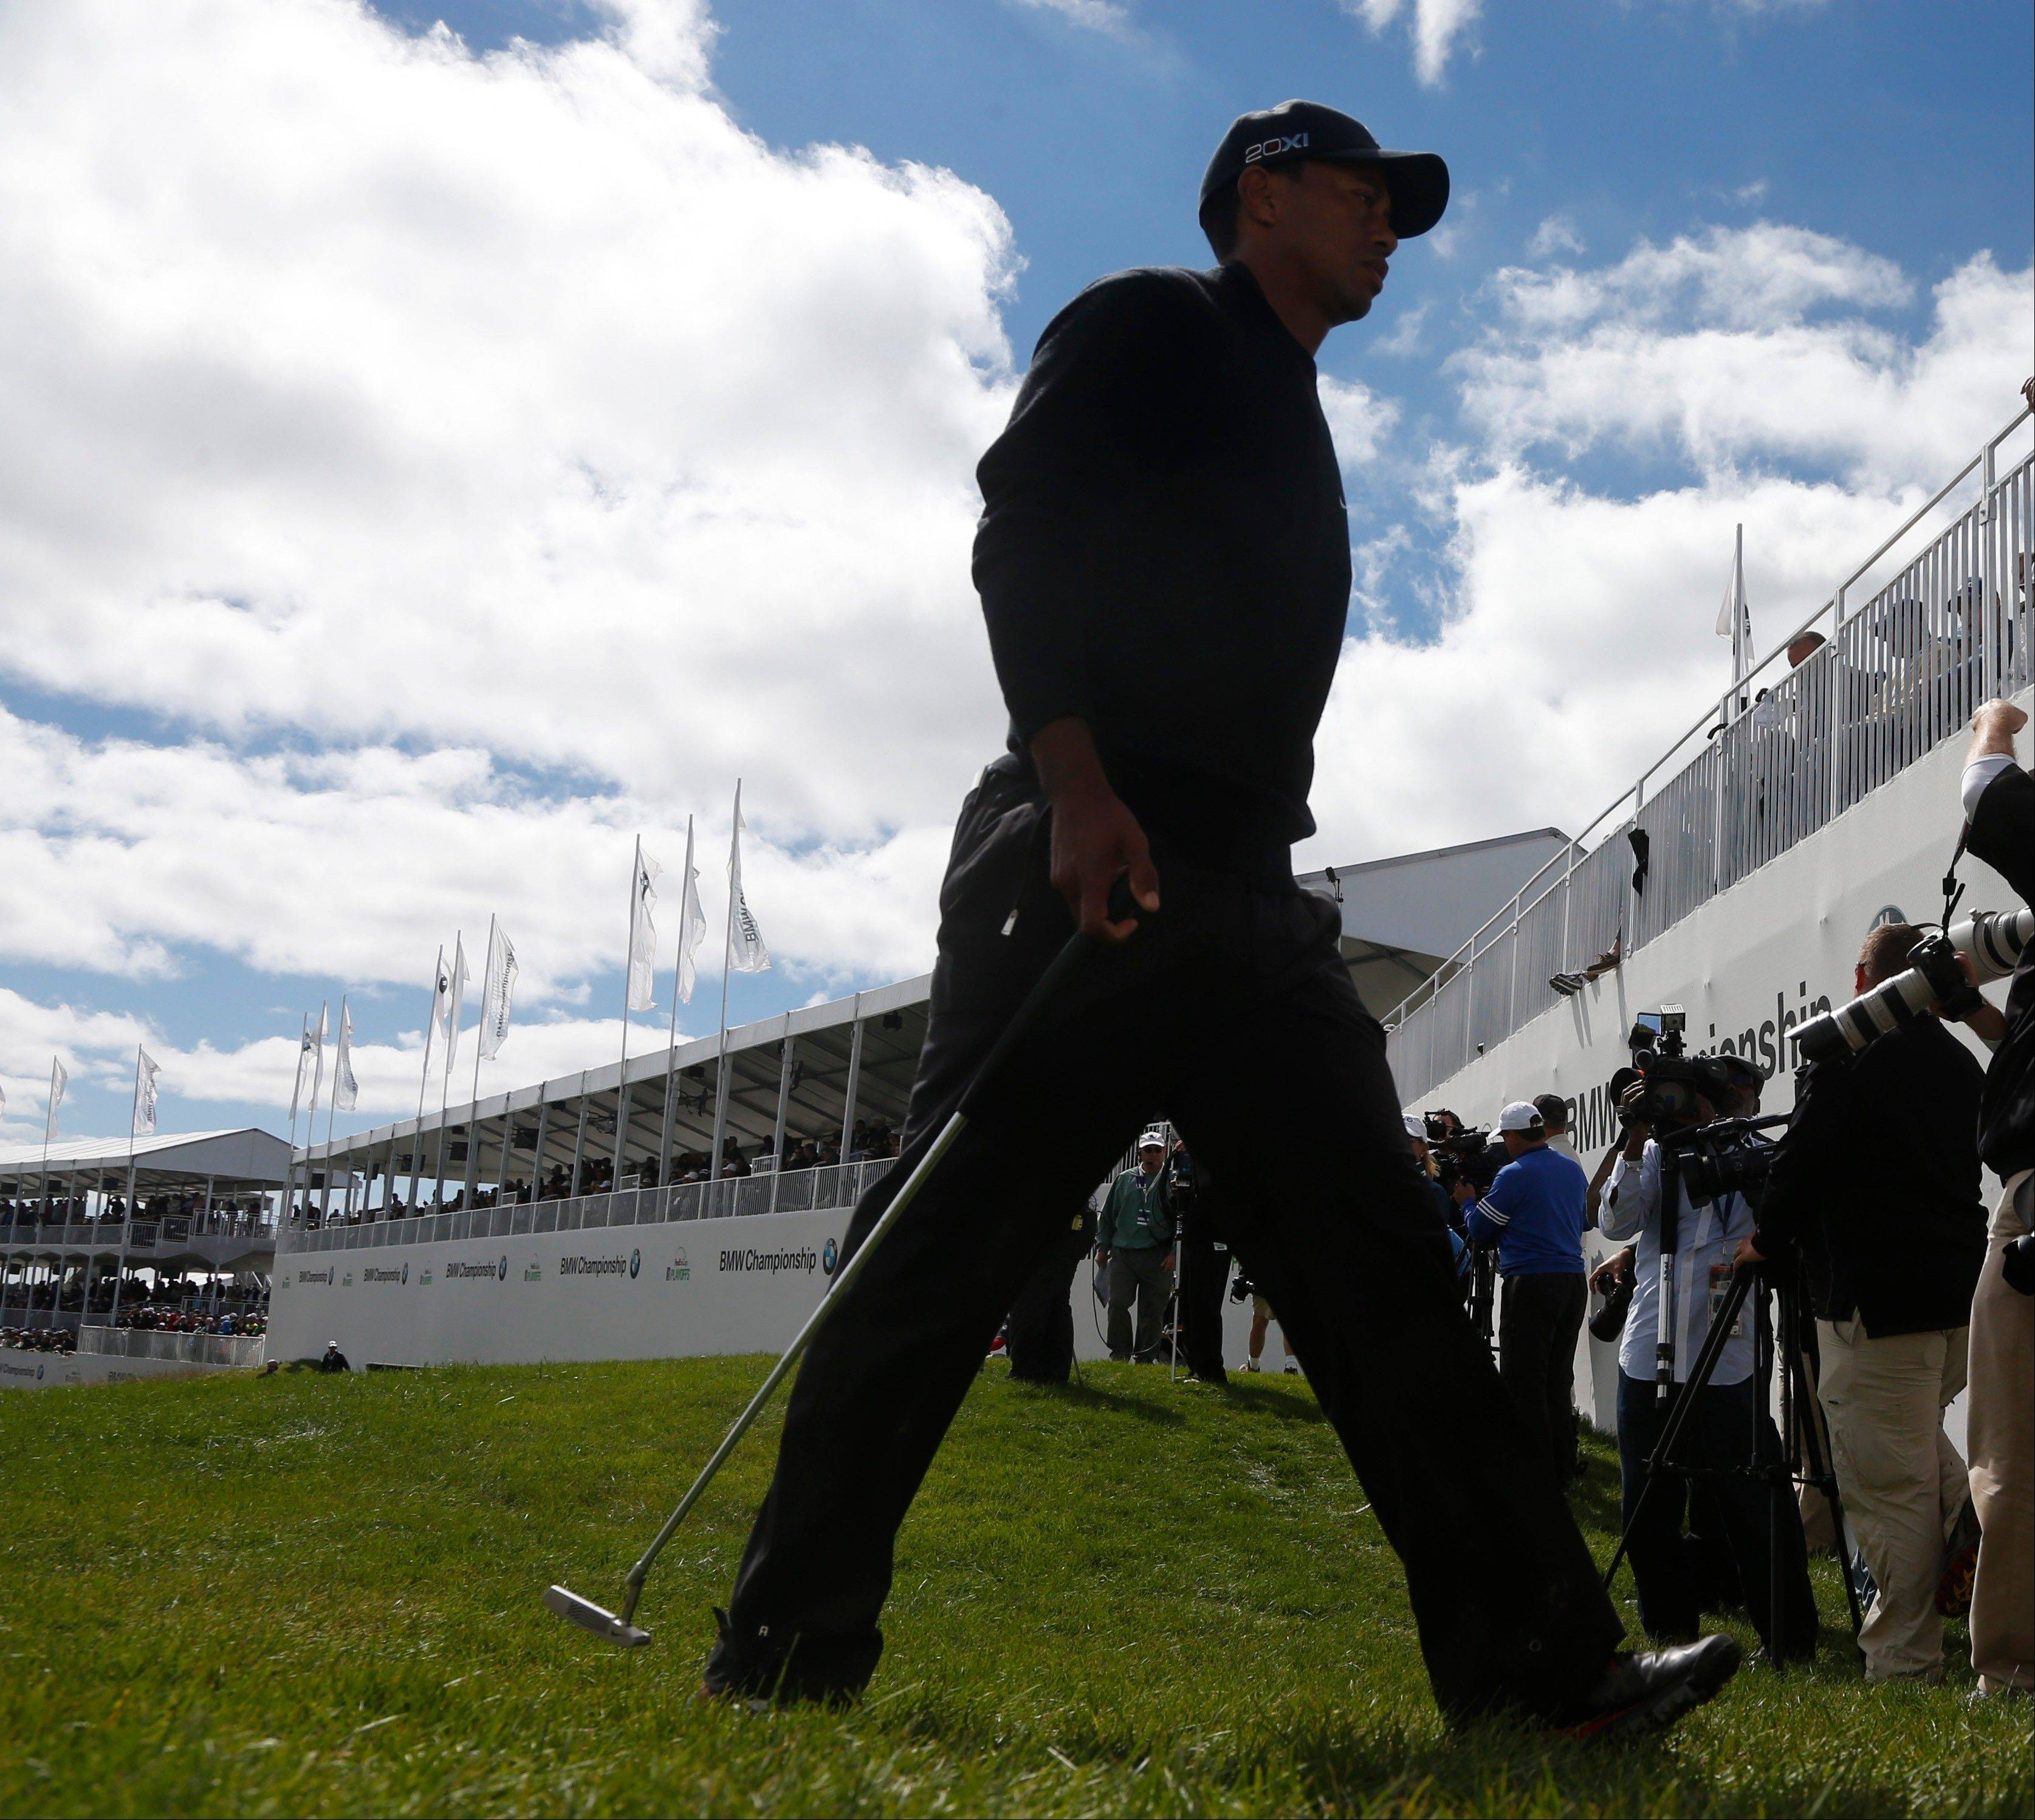 Tiger Woods walks off the 18th green after the final round of the BMW Championship golf tournament at Conway Farms Golf Club in Lake Forest, Ill., Monday, Sept. 16, 2013.